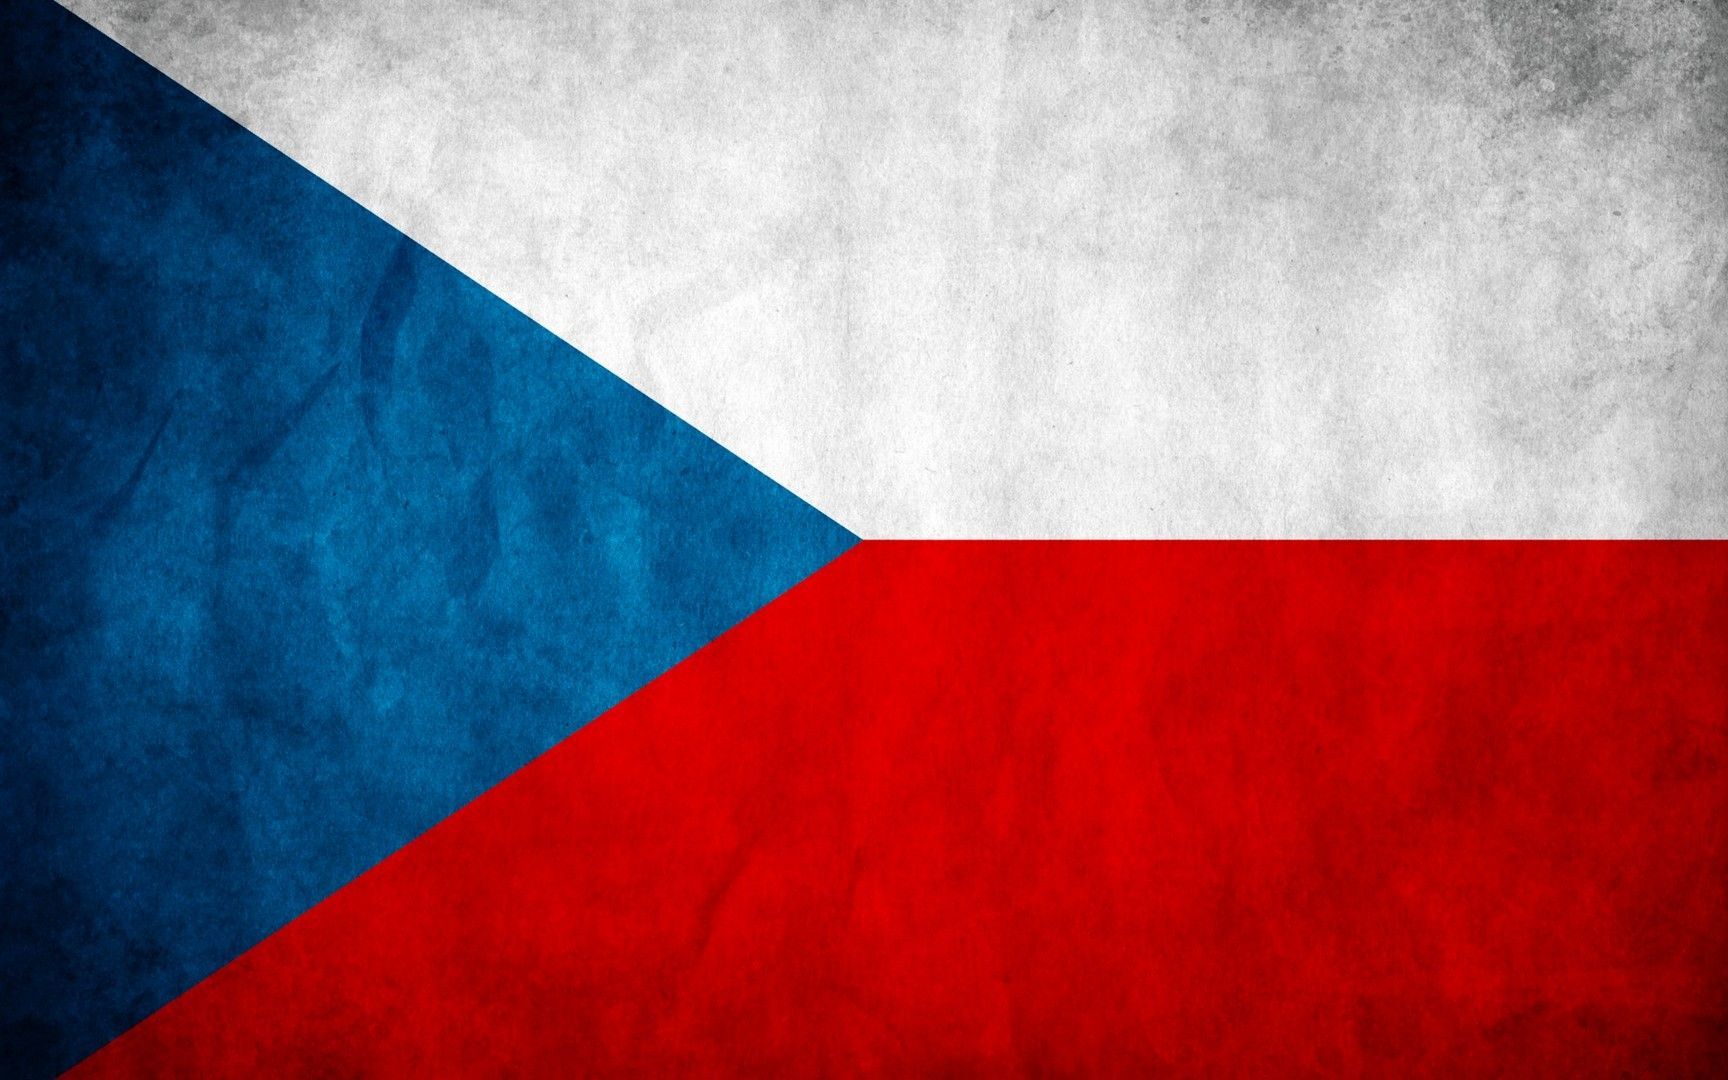 Flag of the Czech Republic wallpaper Flags wallpaper 1728x1080